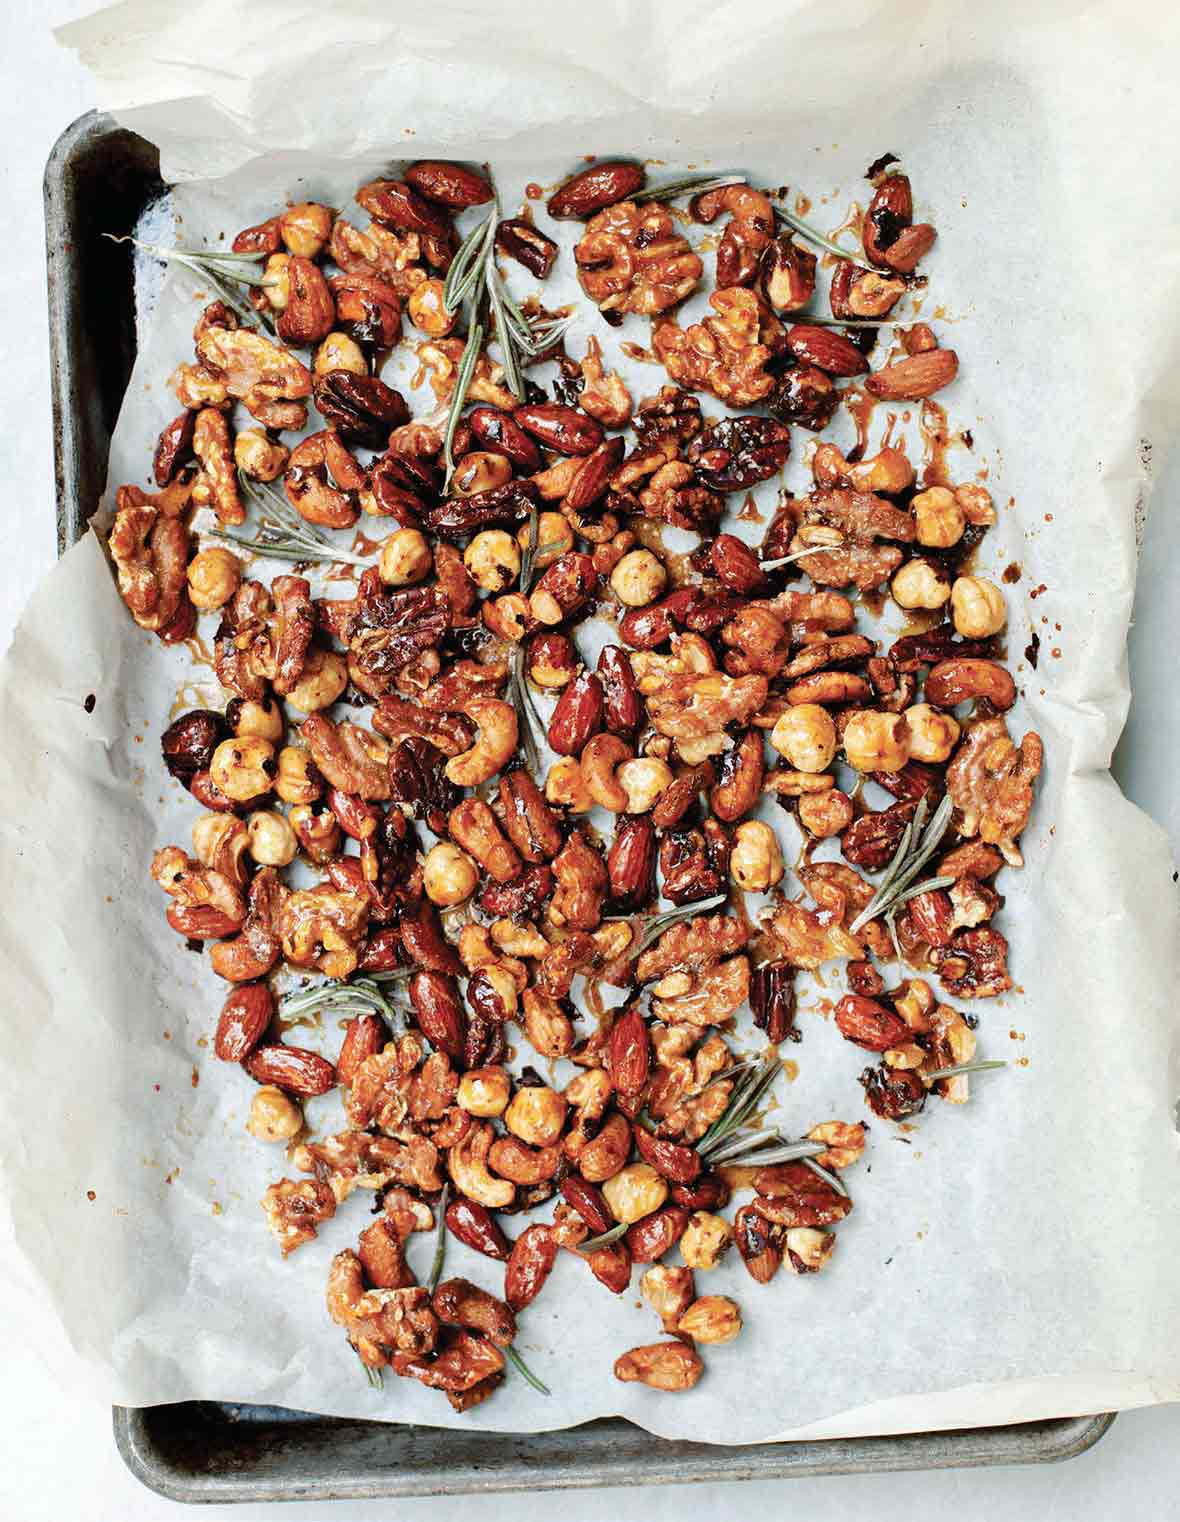 A layer of assorted nuts and rosemary sprigs on a sheet of parchment paper resting in a sheet pan